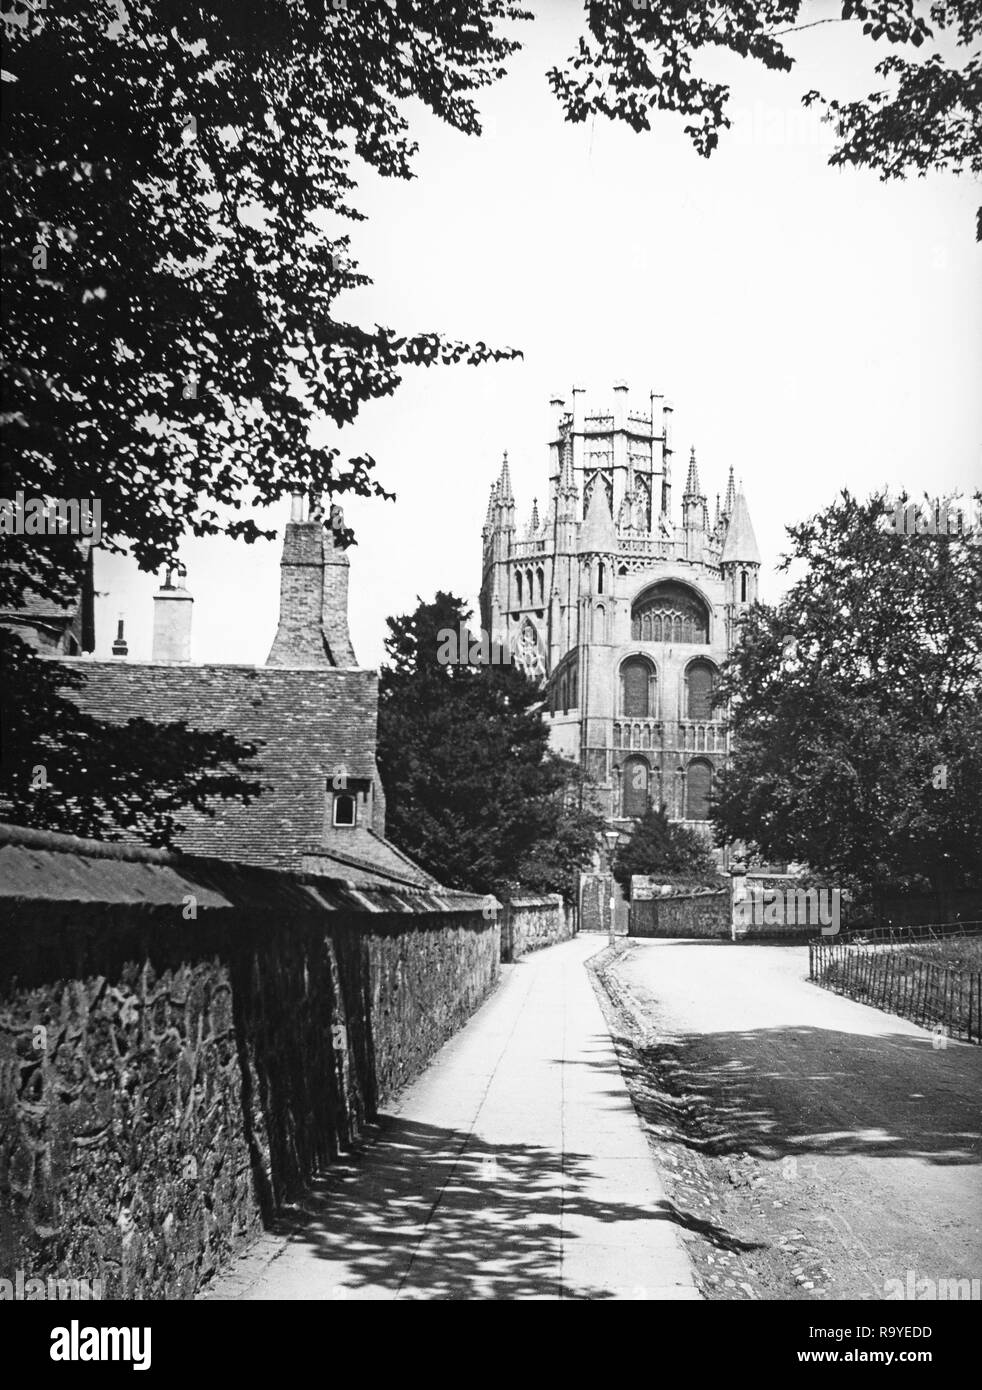 Late Victorian black and white photograph of Ely Cathedral in Cambridgeshire, England.The cathedral has its origins in AD 672 when St Etheldreda built an abbey church. The present building dates back to 1083, and cathedral status was granted it in 1109. Until the Reformation it was the Church of St Etheldreda and St Peter, at which point it was refounded as the Cathedral Church of the Holy and Undivided Trinity of Ely, continuing as the principal church of the Diocese of Ely, in Cambridgeshire. - Stock Image